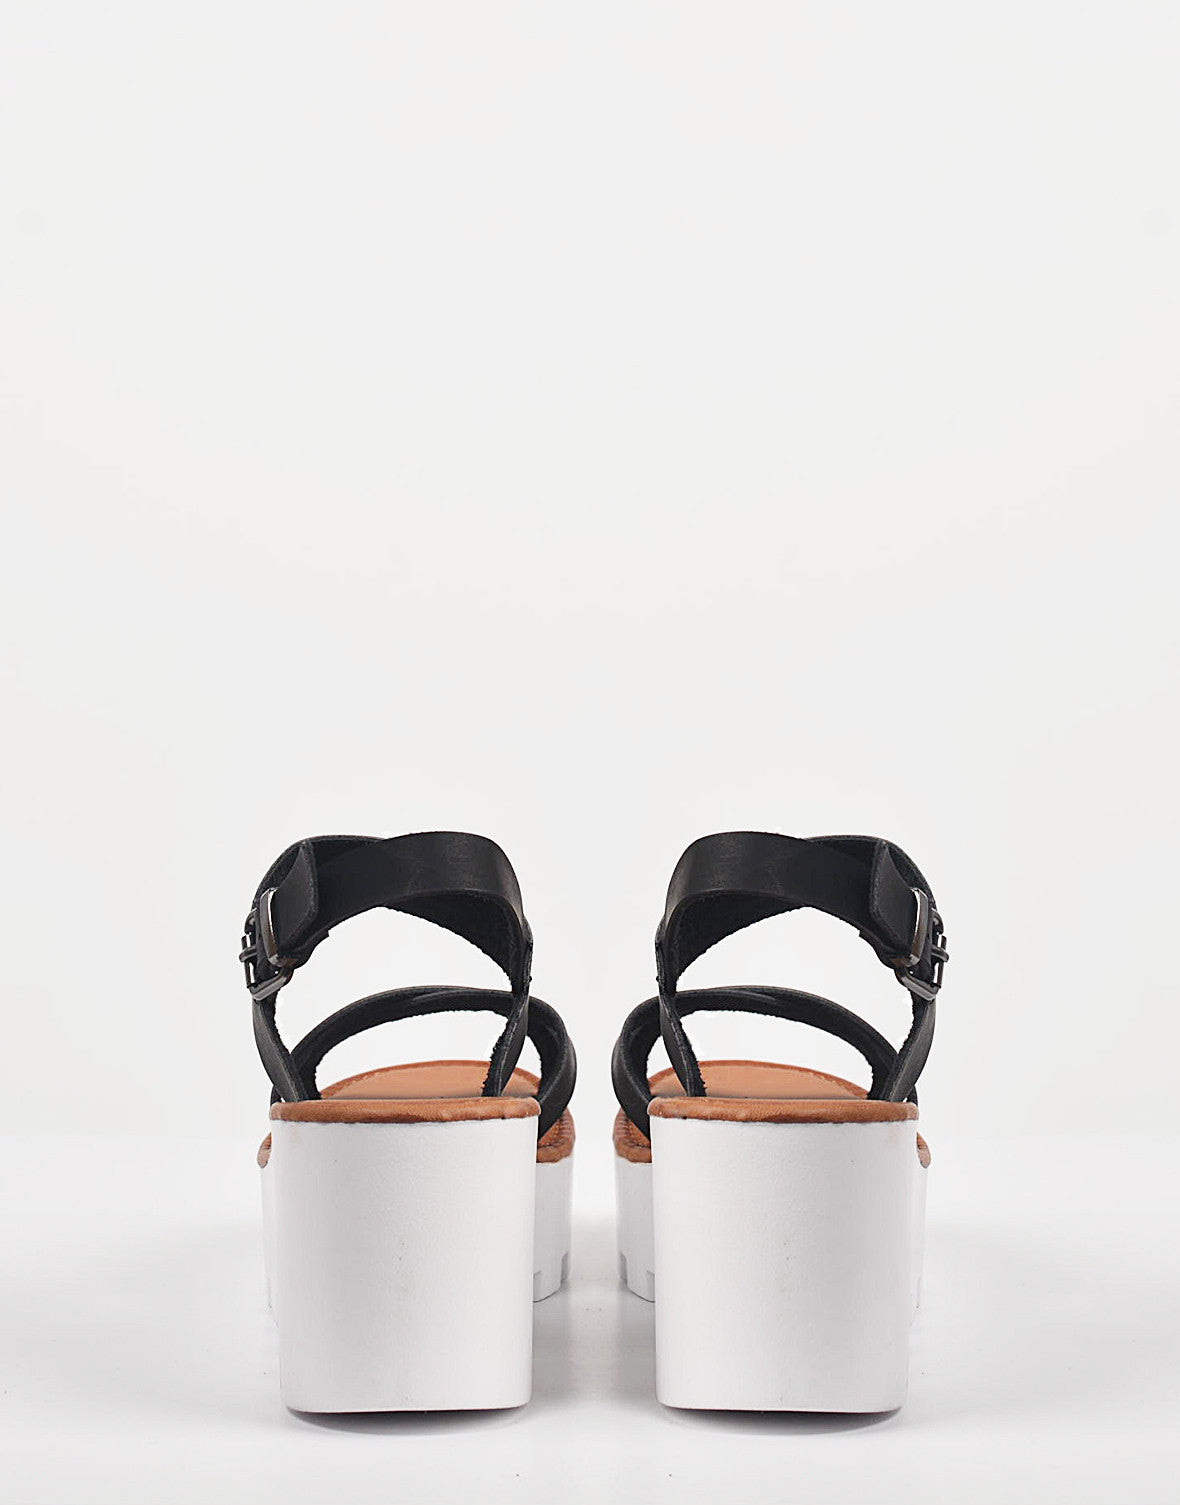 Back View of Crossover Slingback Wedge Sandals